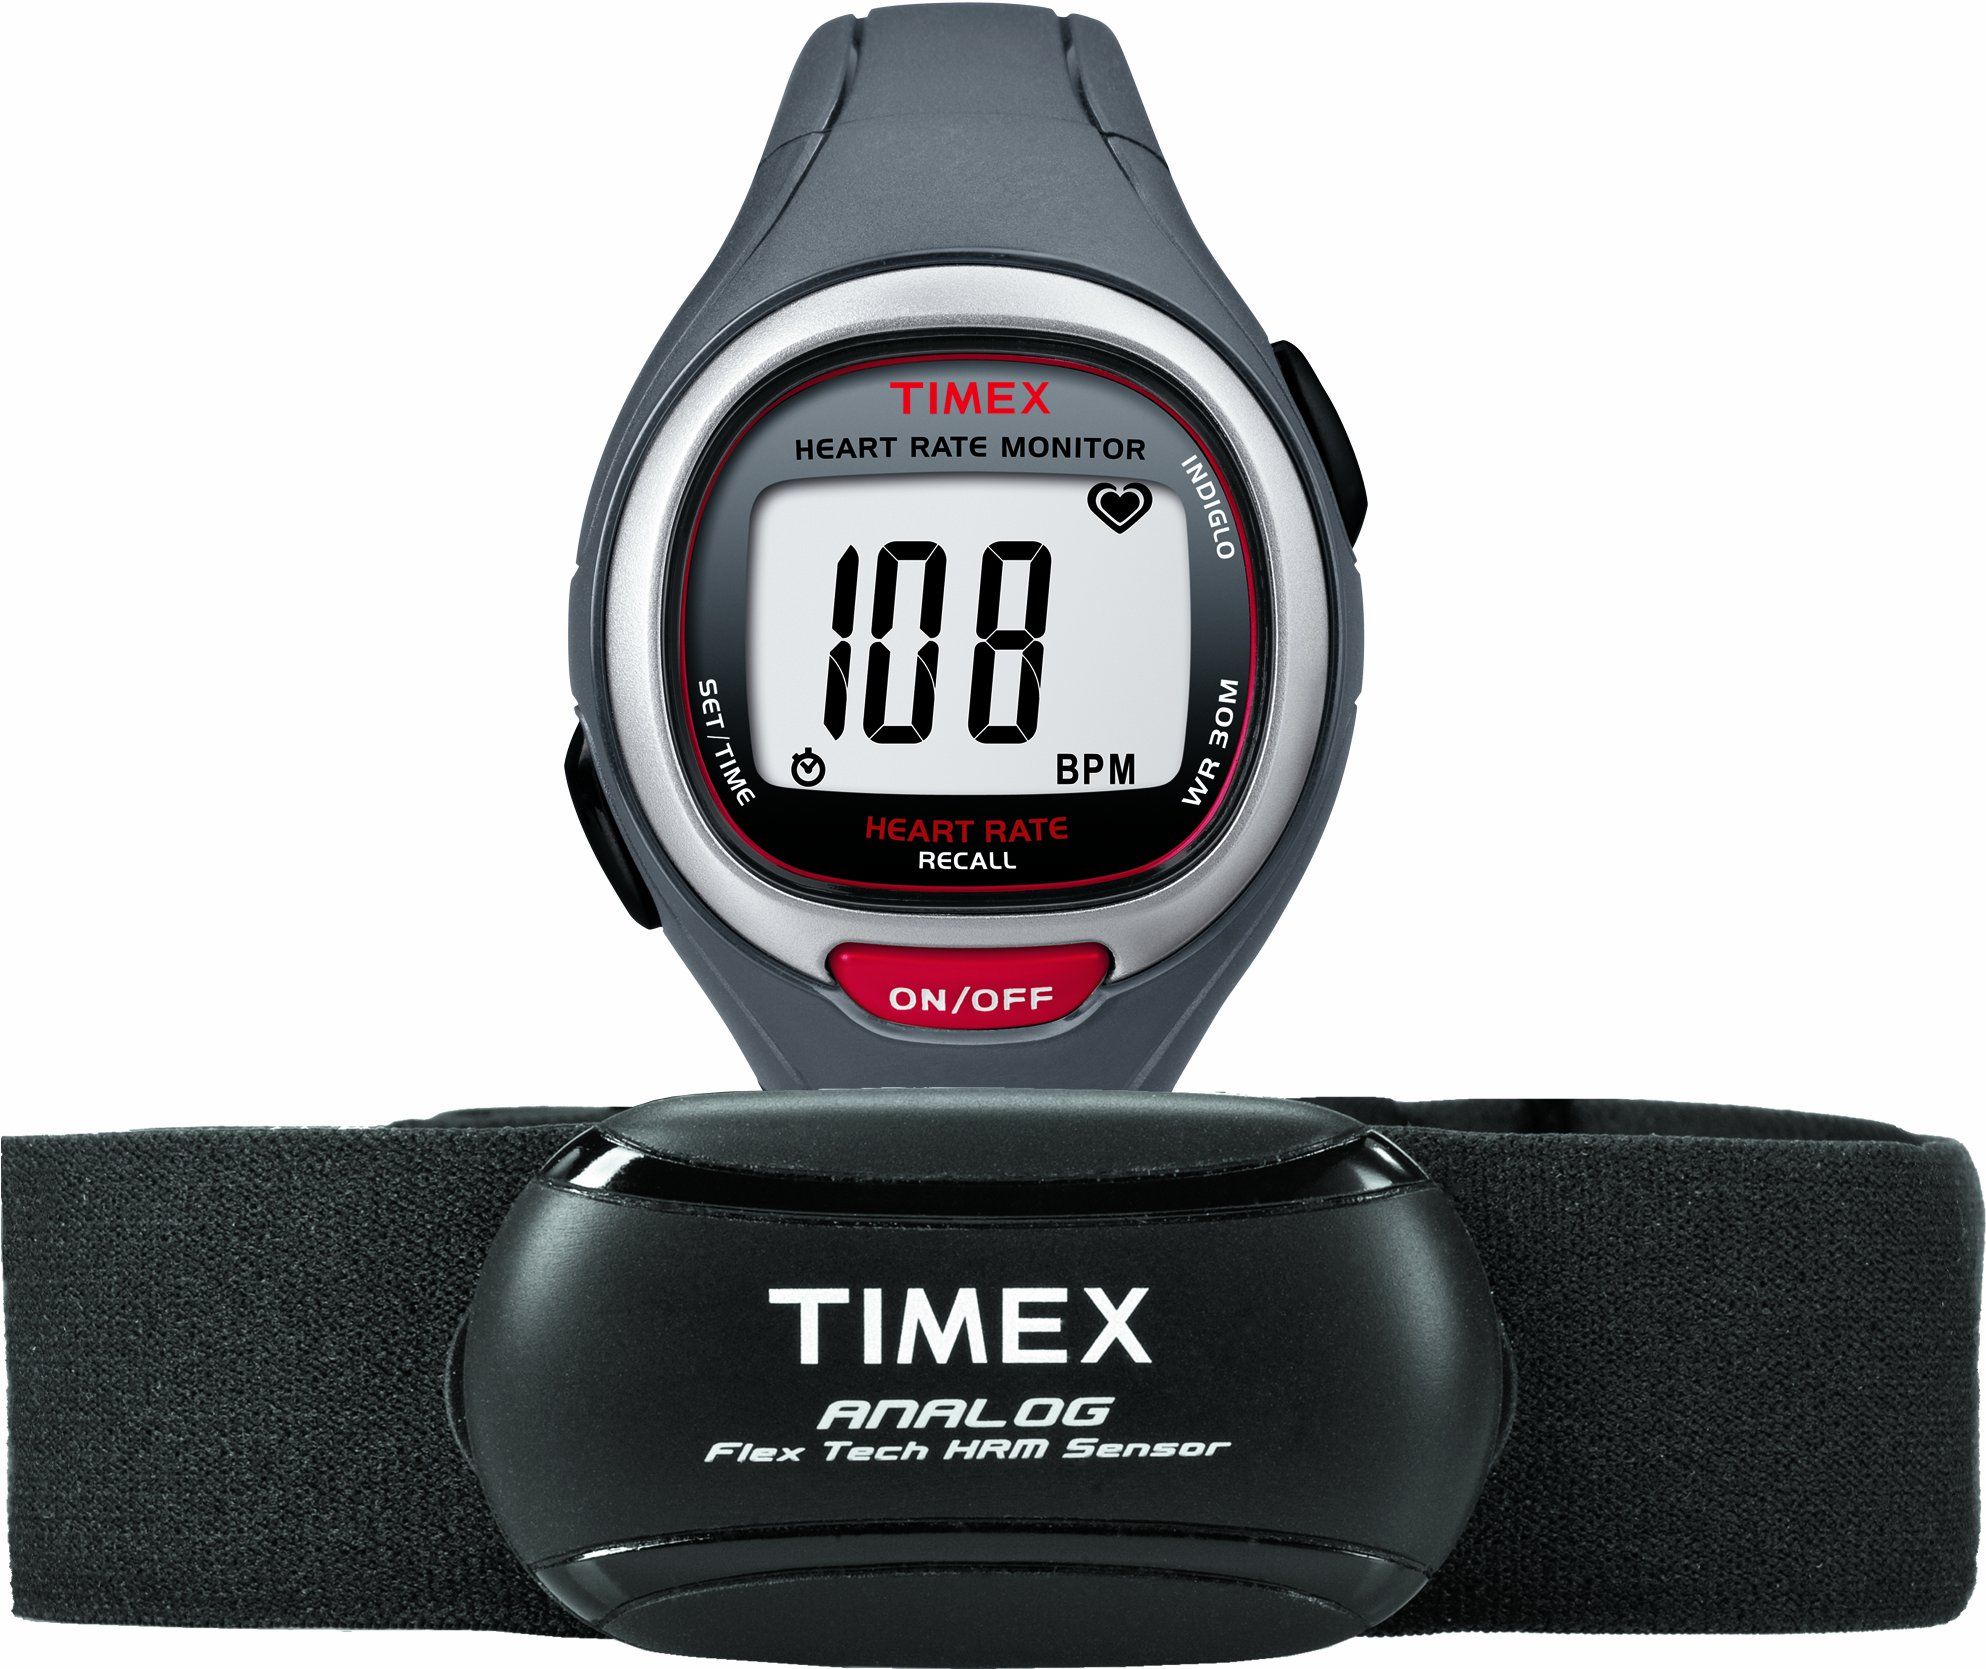 Timex Unisex T5K729 Easy Trainer Analog HRM Flex Tech Chest Strap & Mid-Size Gray/Red Watch